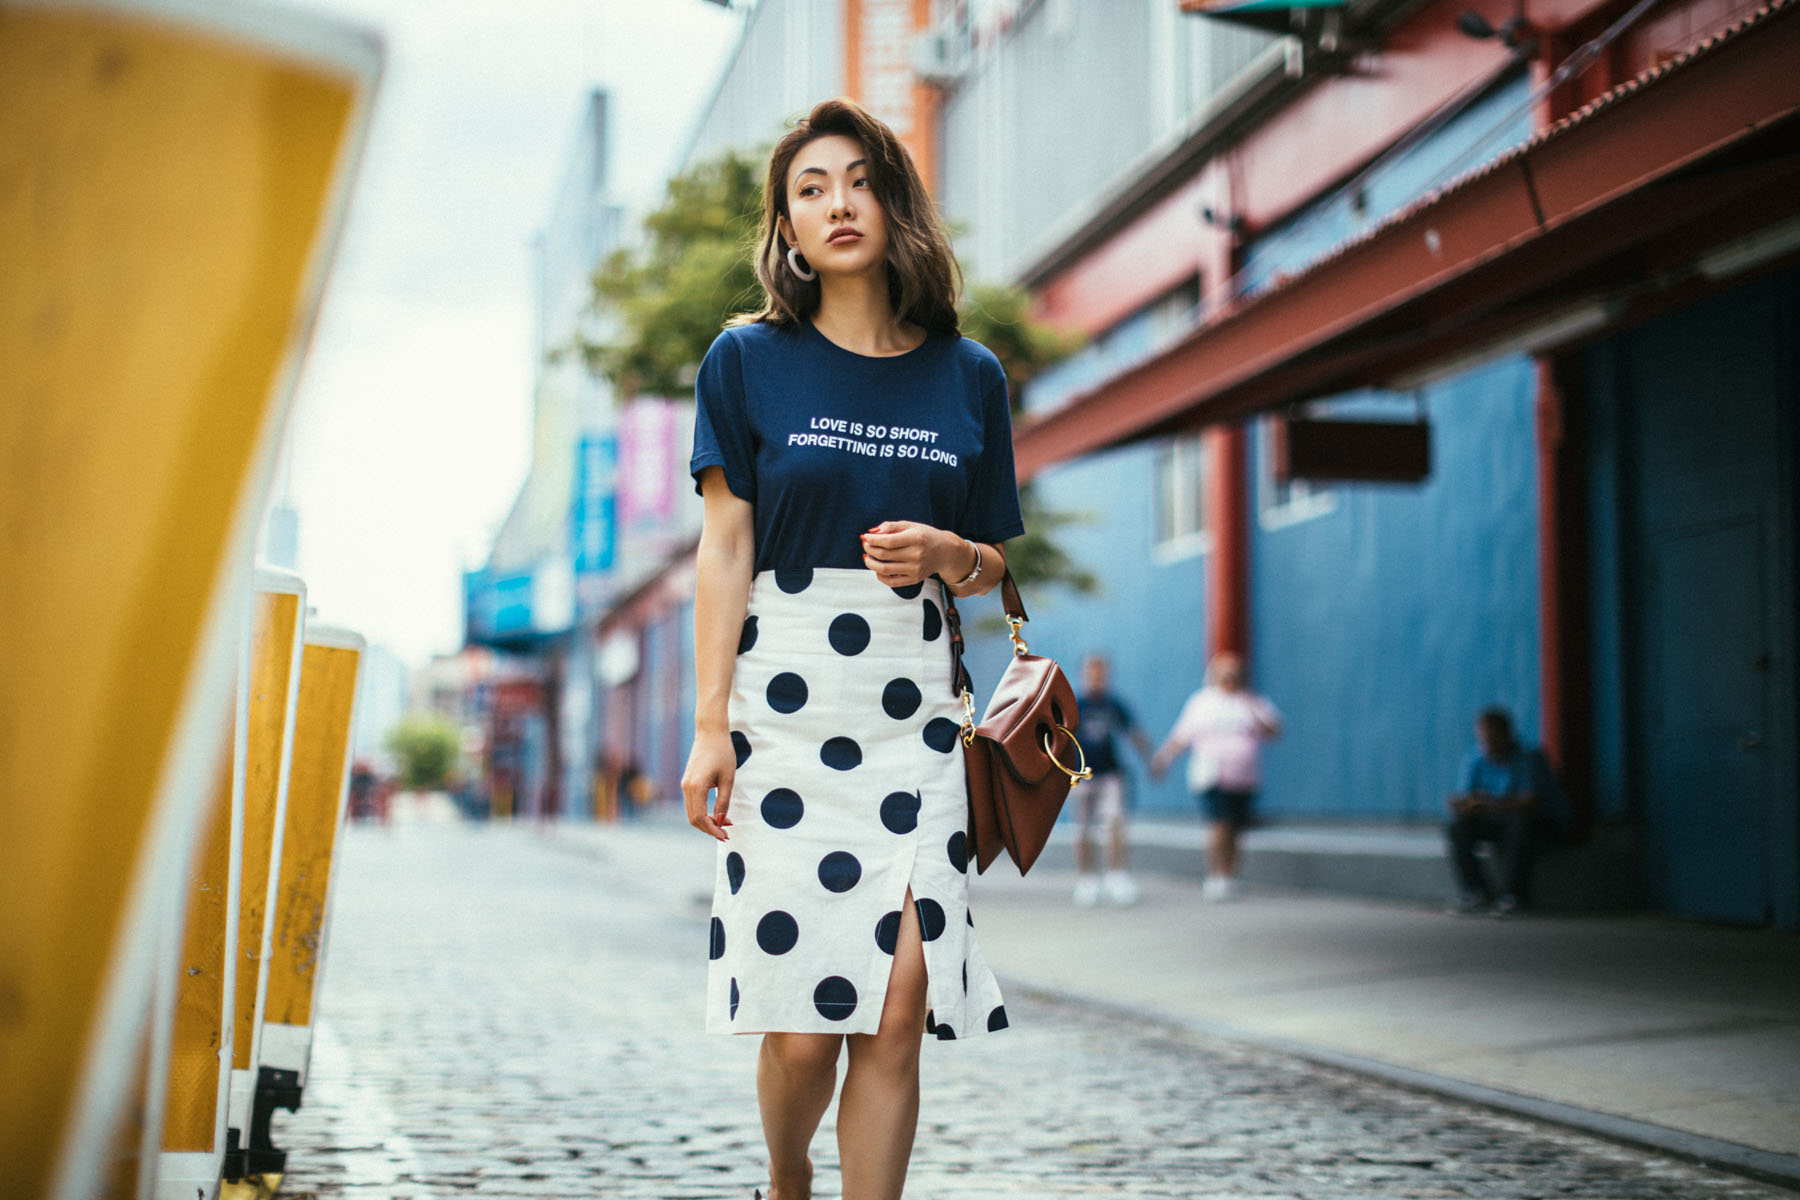 Guide to Wearing Color For Spring - navy top, navy polka dot skirt, white and navy outfit, spring 2018 colors // NotJessFashion.com